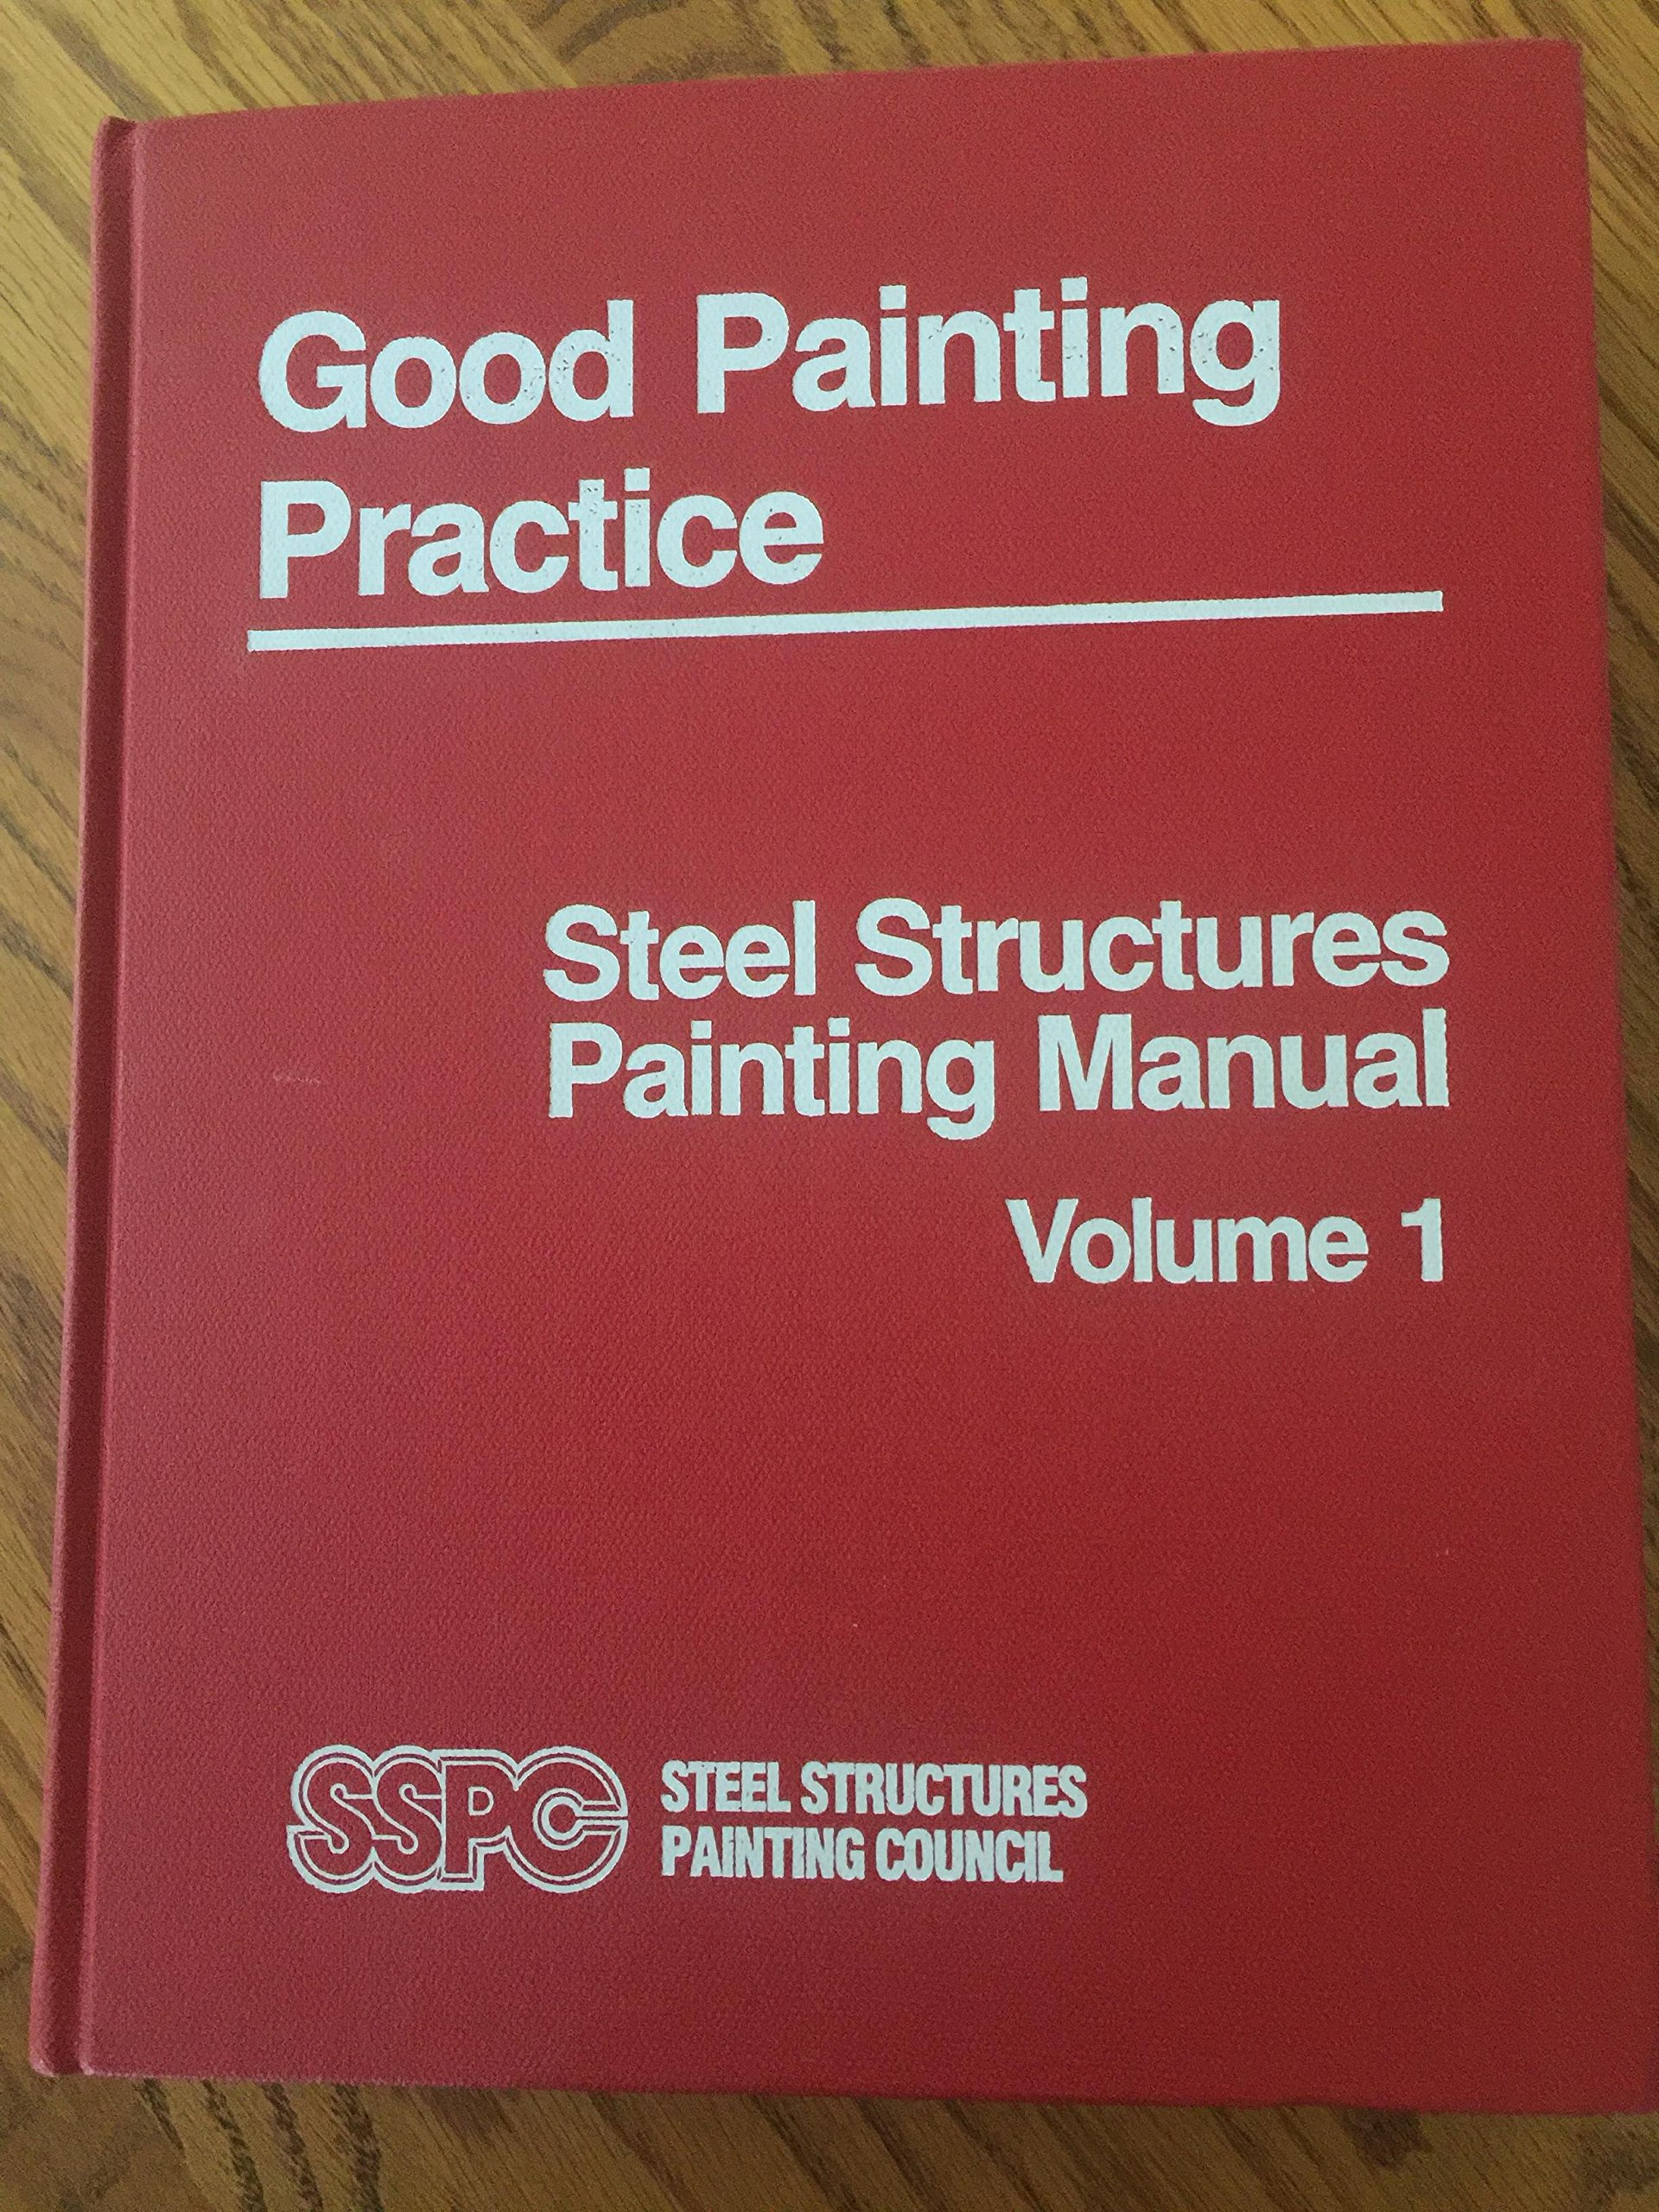 good painting practice steel structures painting manual volume 1 rh amazon com steel structures painting manual vol 1 steel structures painting manual vol 1